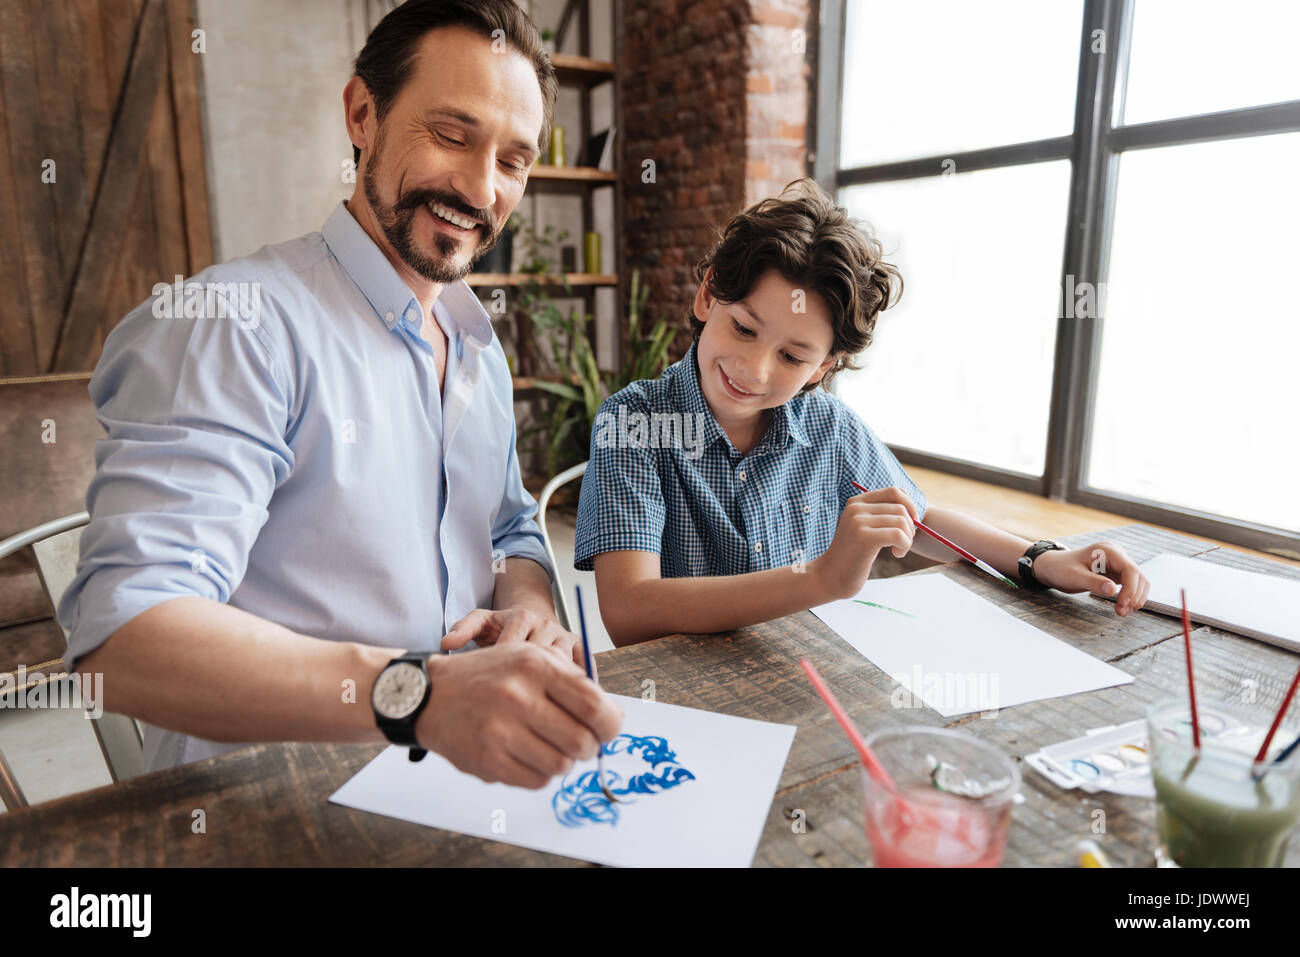 Sweet teenager copying the picture of his father - Stock Image